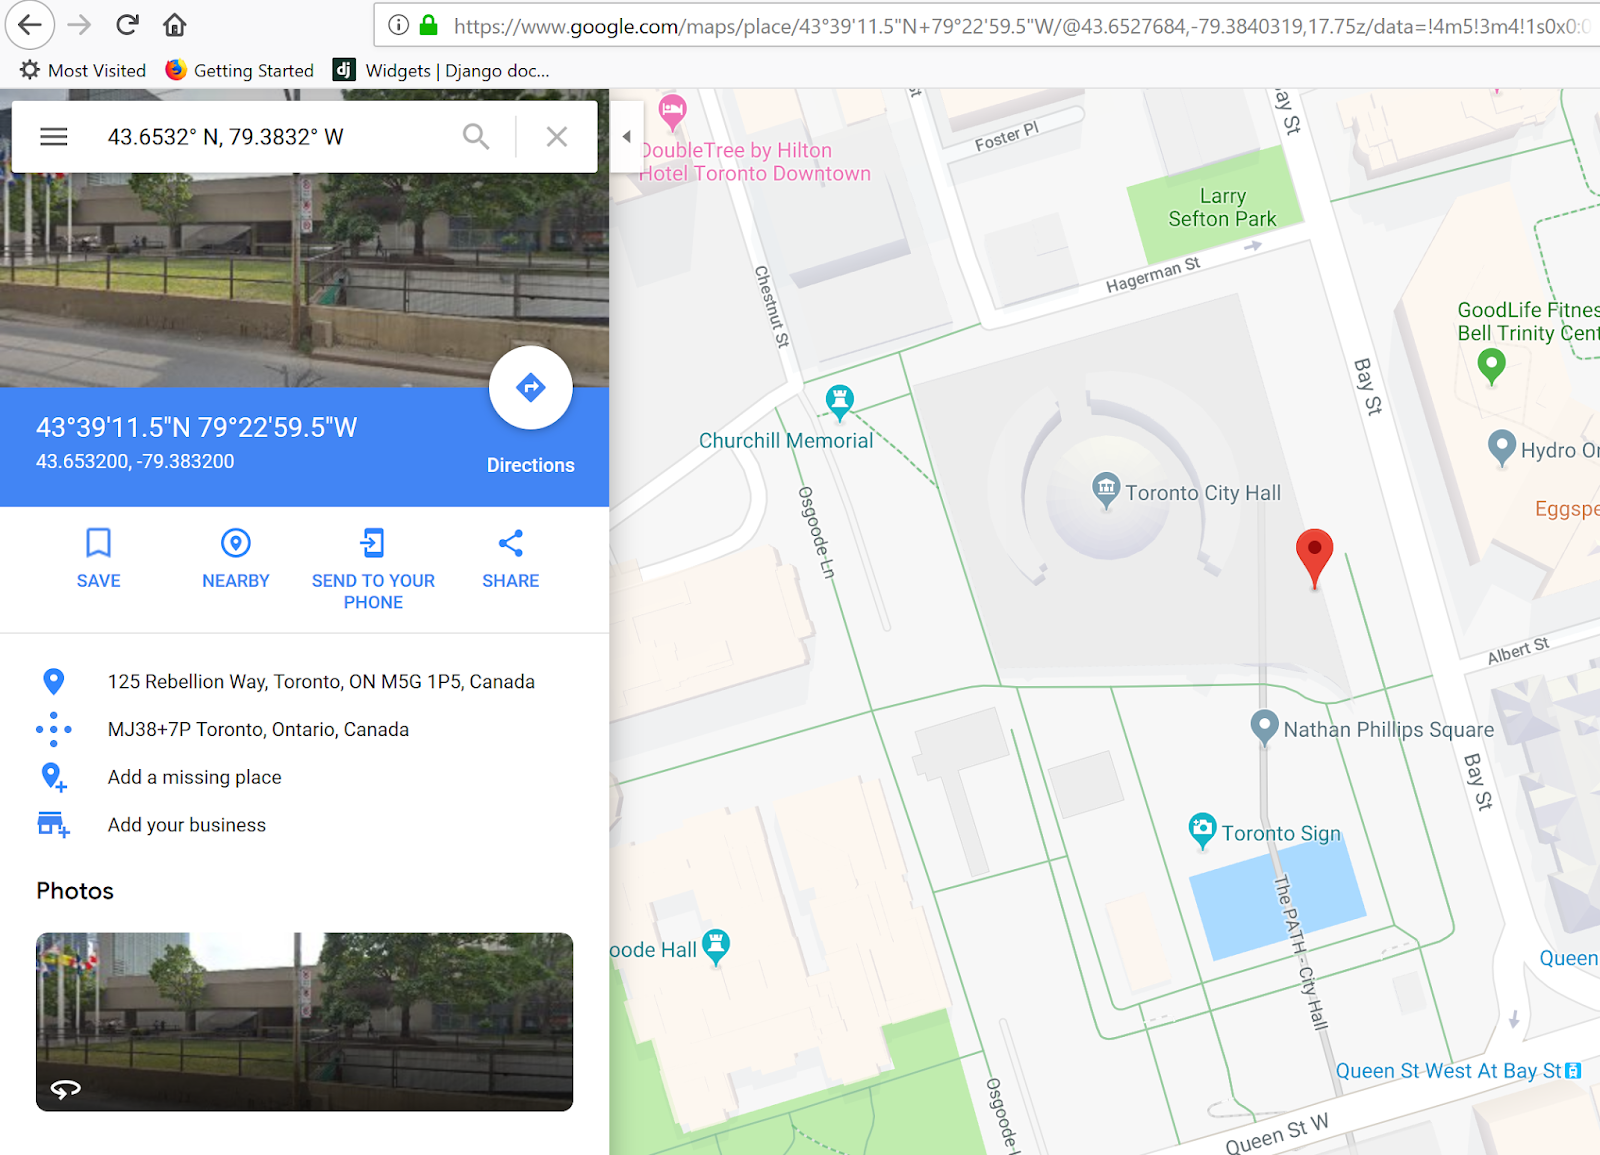 ISeeYou - Bash And Javascript Tool To Find The Exact Location Of The